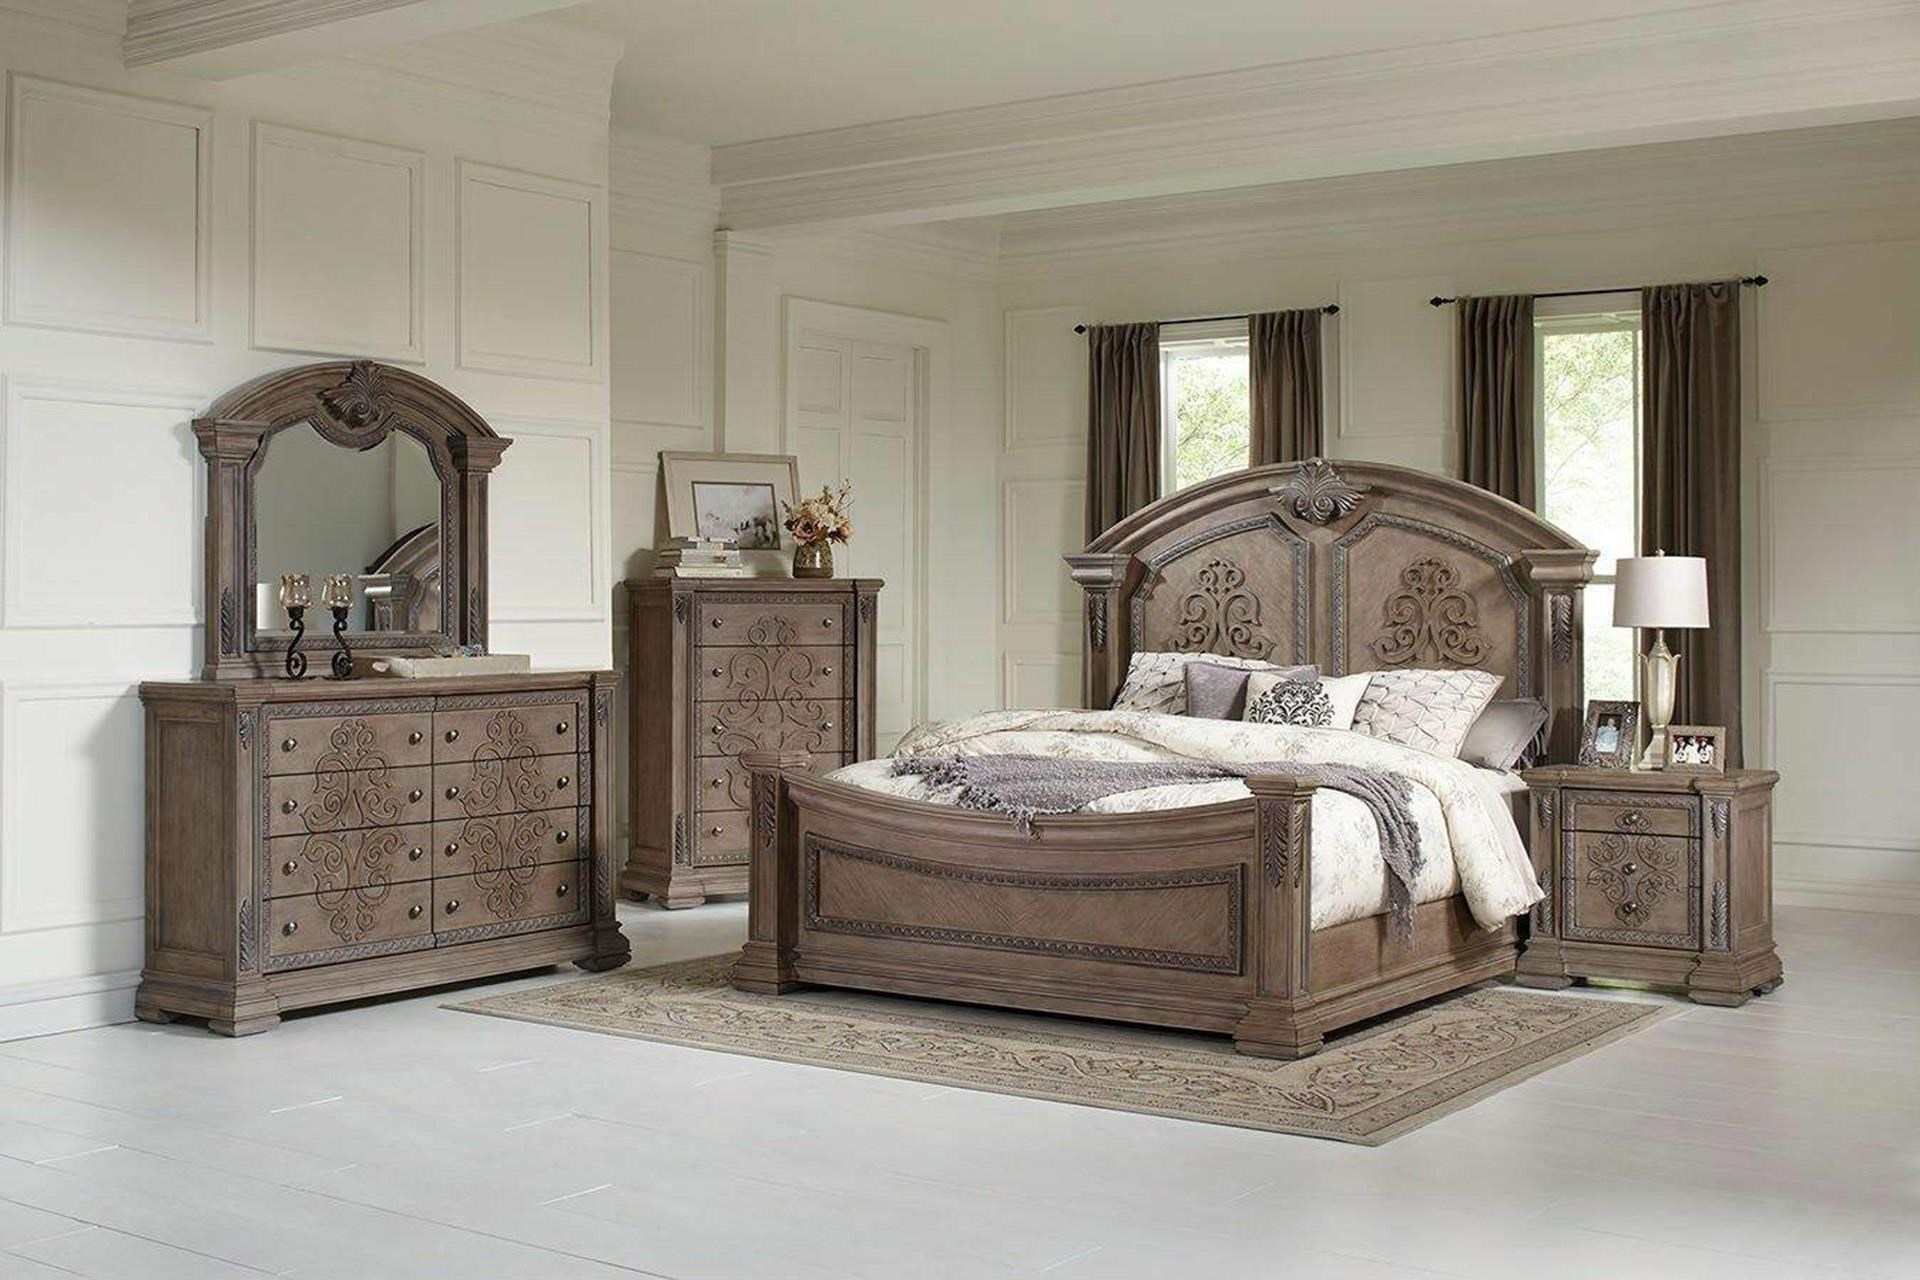 King Panel Bed, Dresser, Mirror, and Nightst